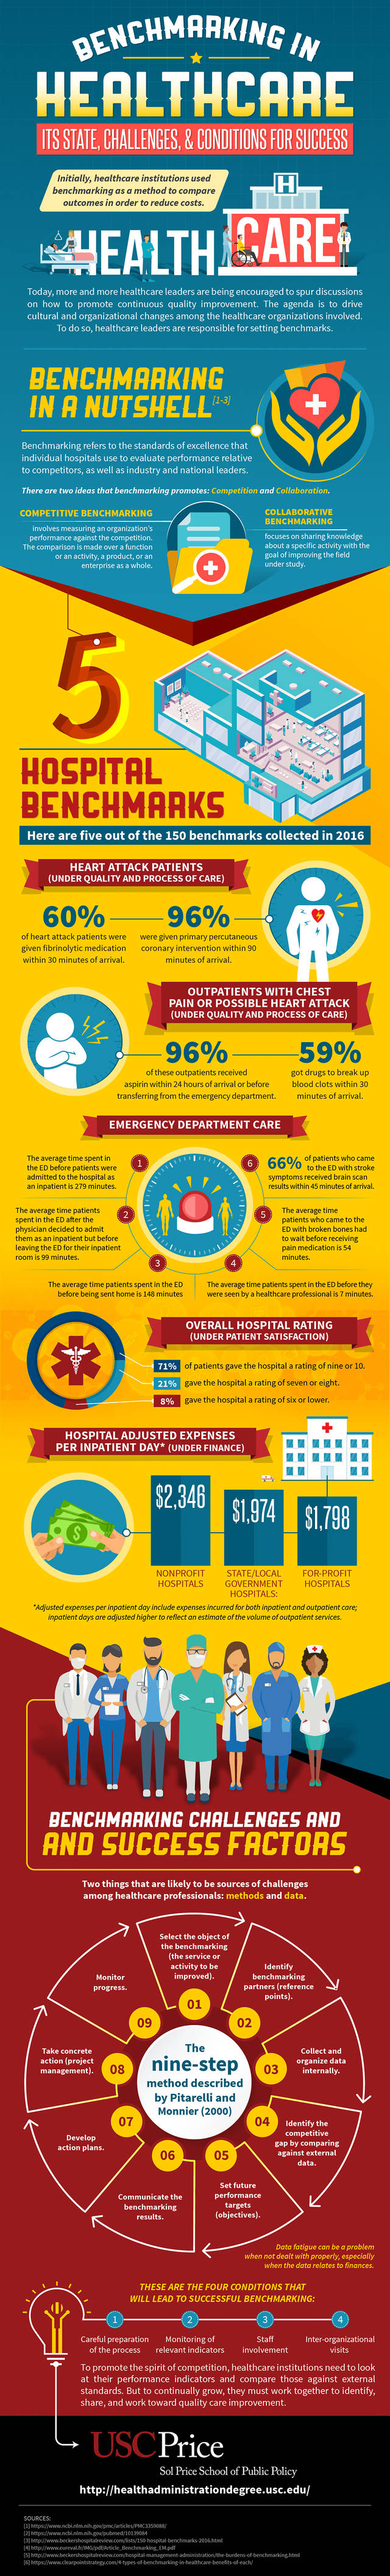 Benchmarking in healthcare